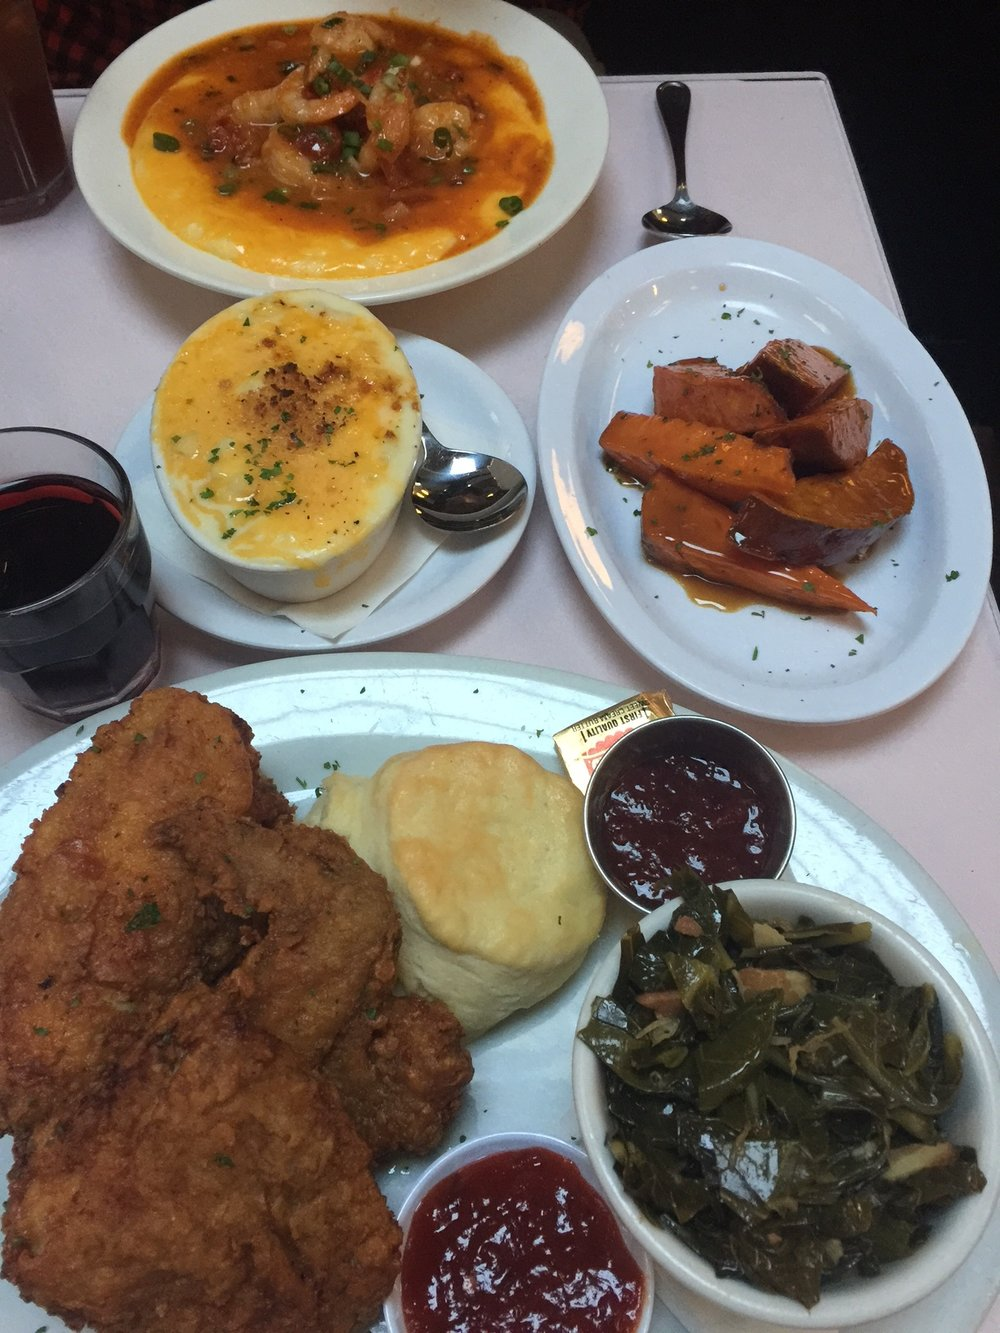 Brenda's Fried Chicken, mac and cheese, candied yams and shrimp and grits